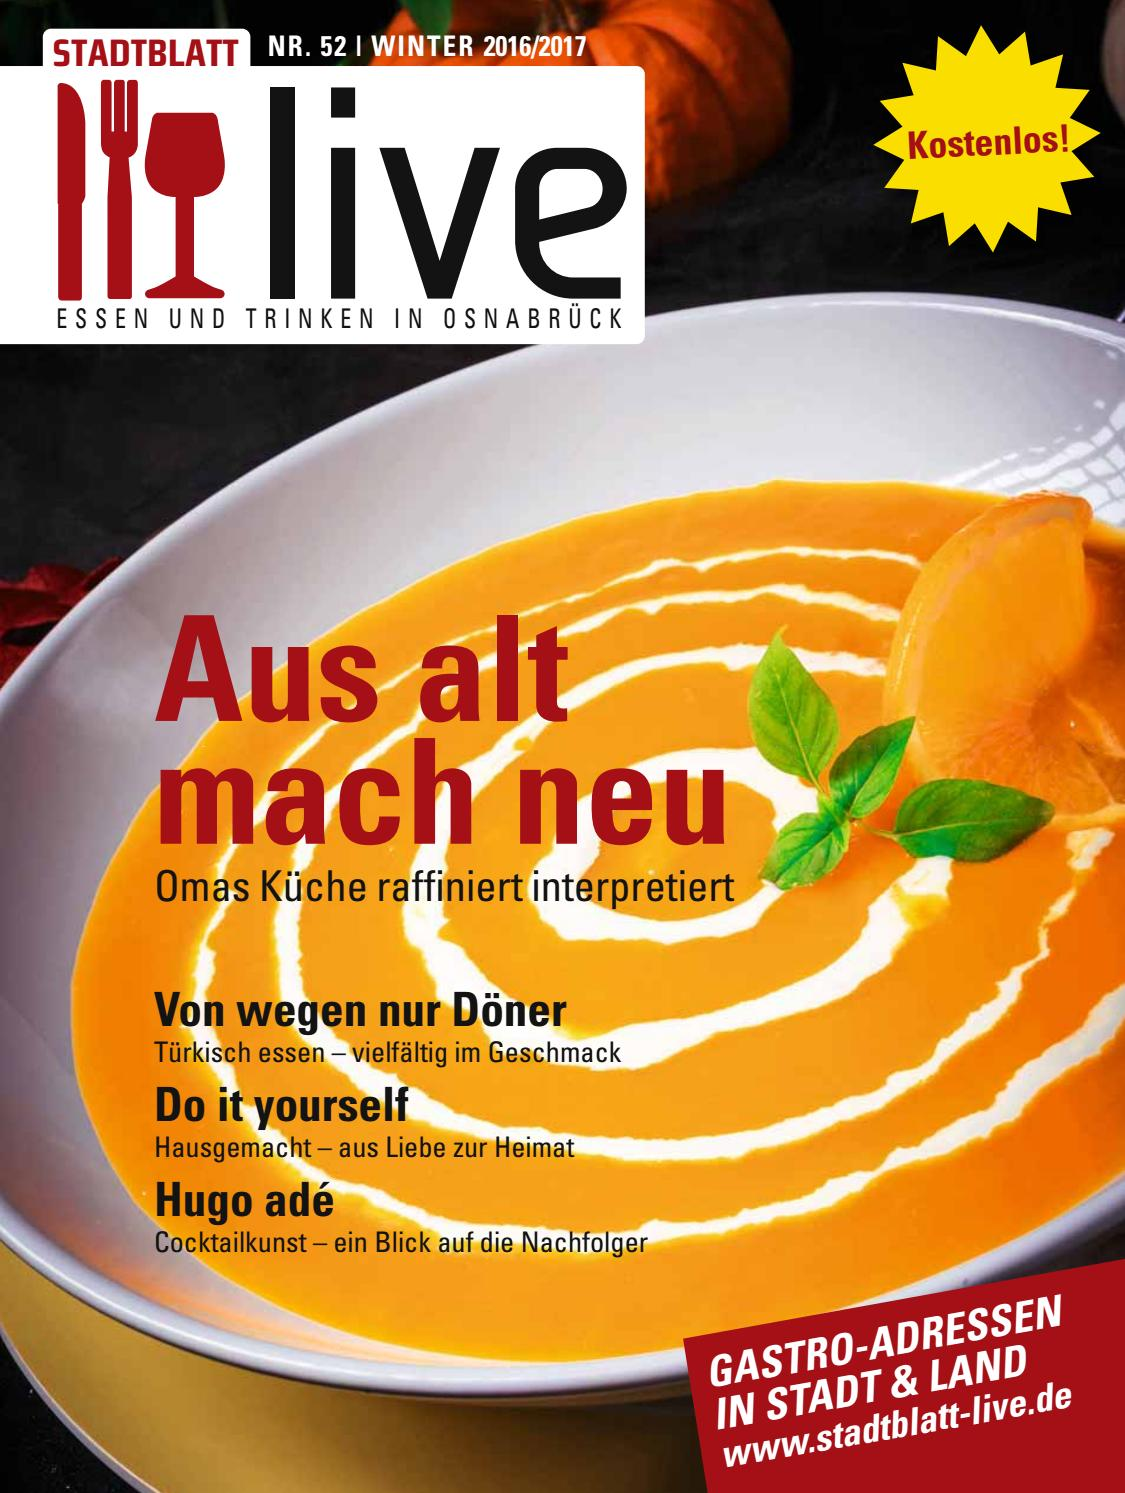 STADTBLATT live Winter 2016/2017 by bvw werbeagentur - issuu